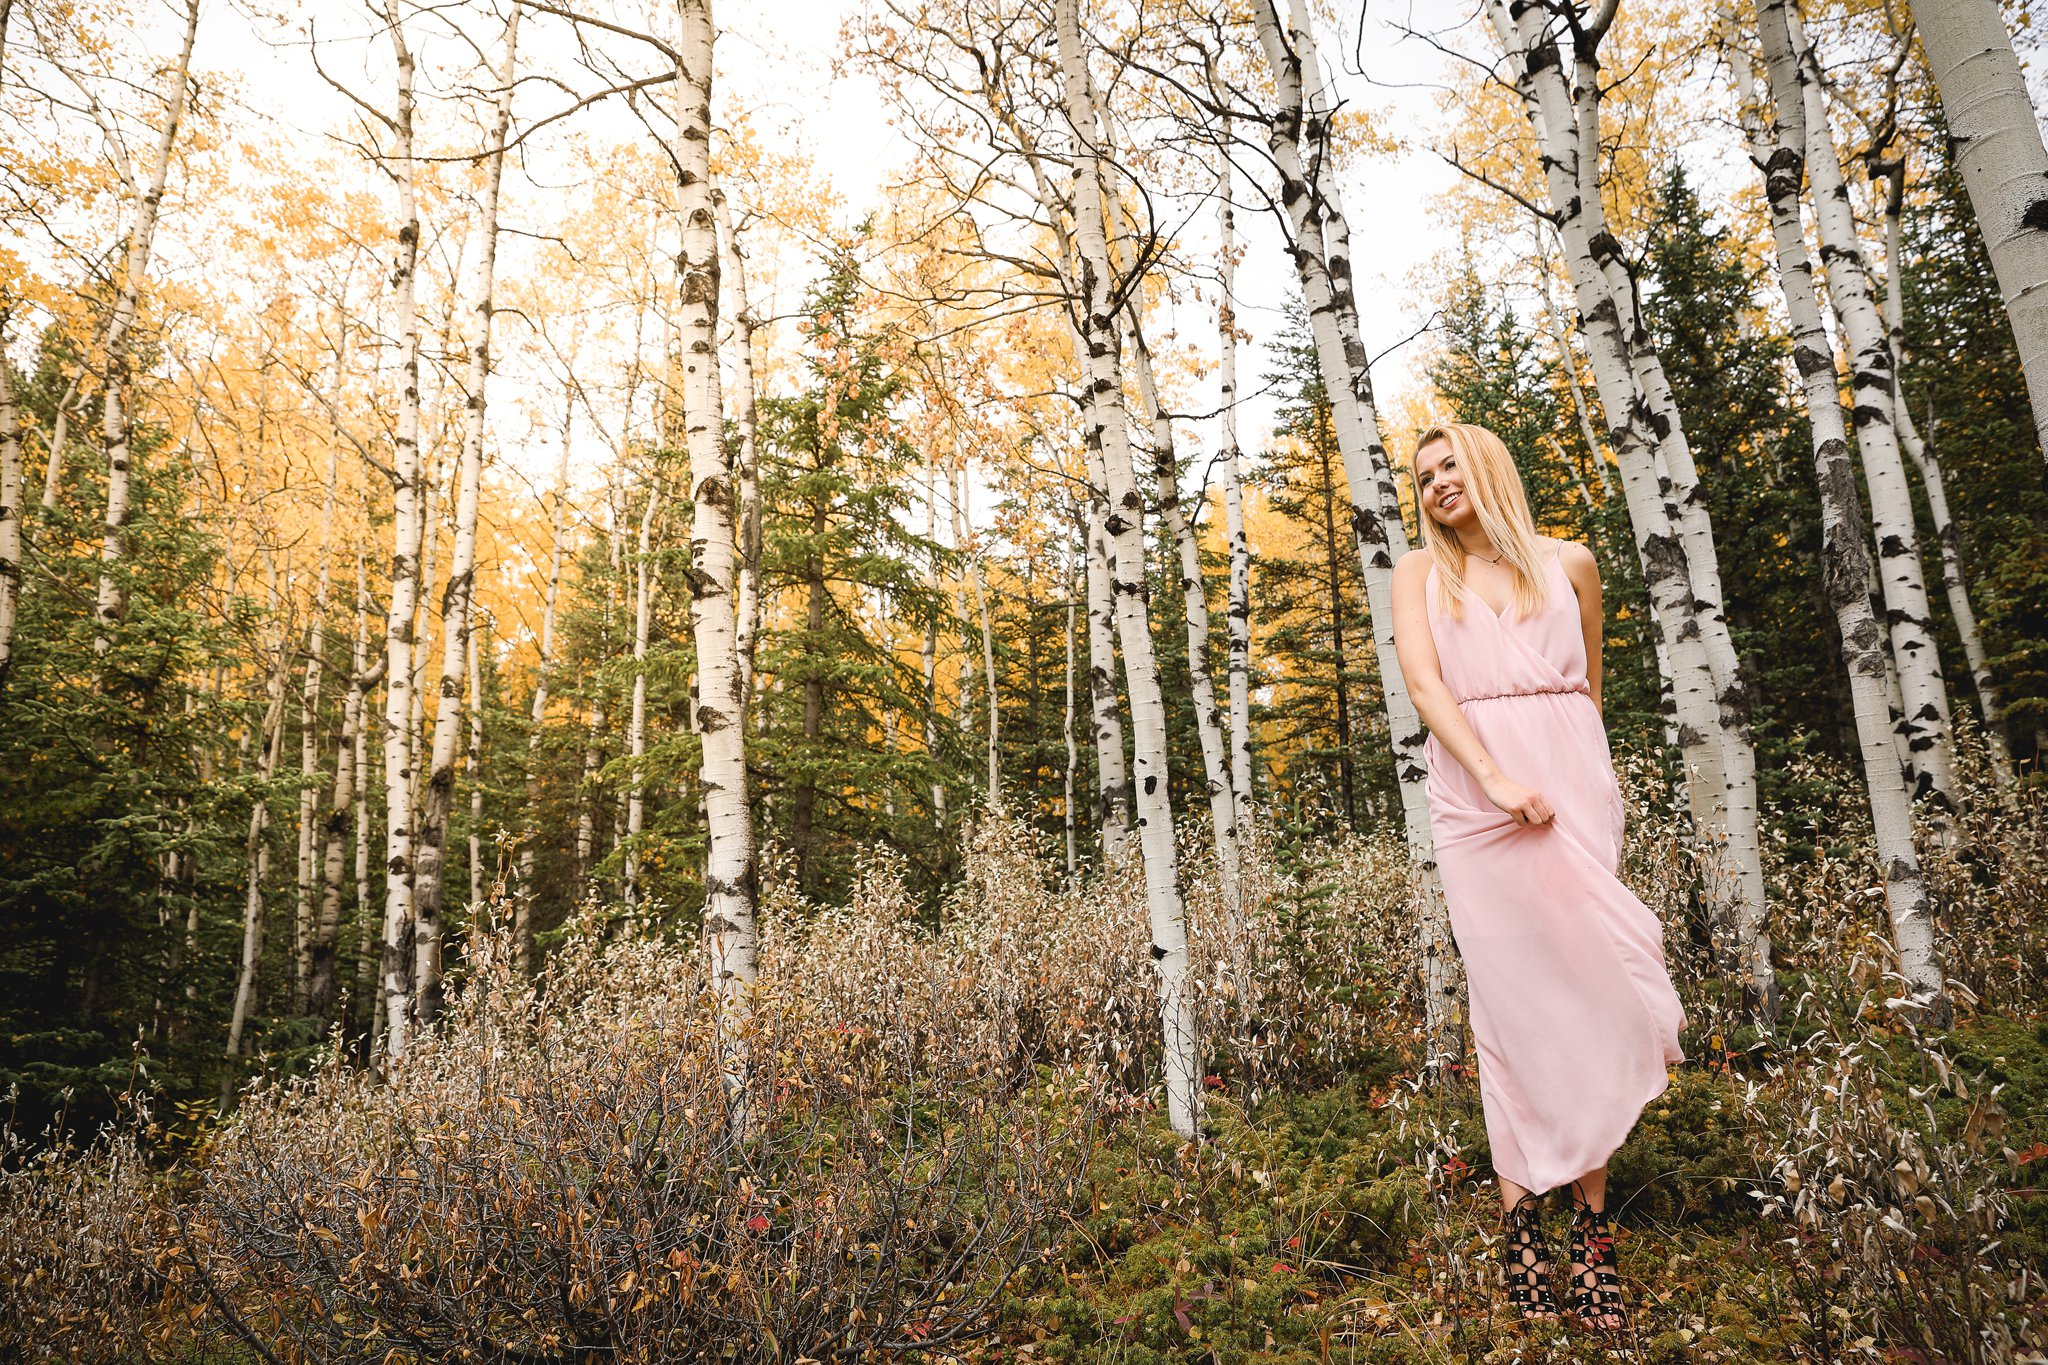 AshleyDaphnePhotography Calgary Photographer Wedding Family Senior Portraits Rocky Mountains Sheep River Falls Autumn Fall_0042.jpg